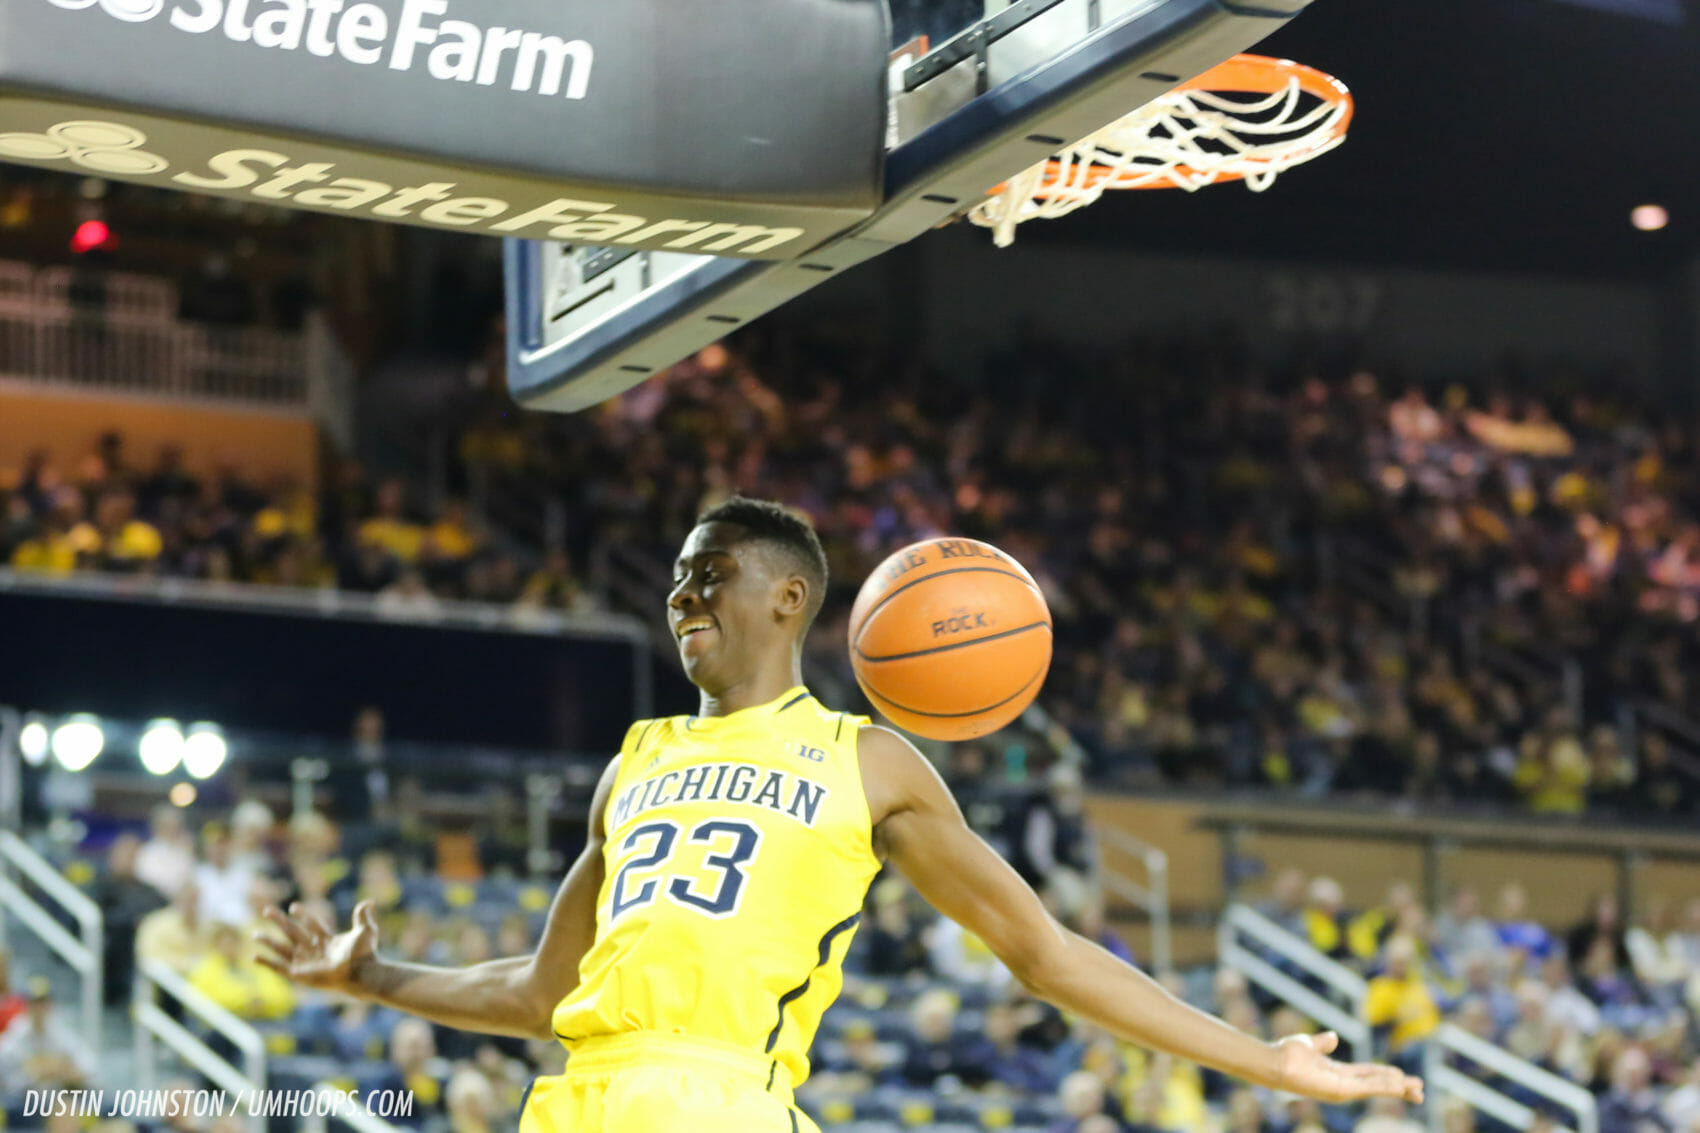 Michigan 92, Hillsdale 68-20